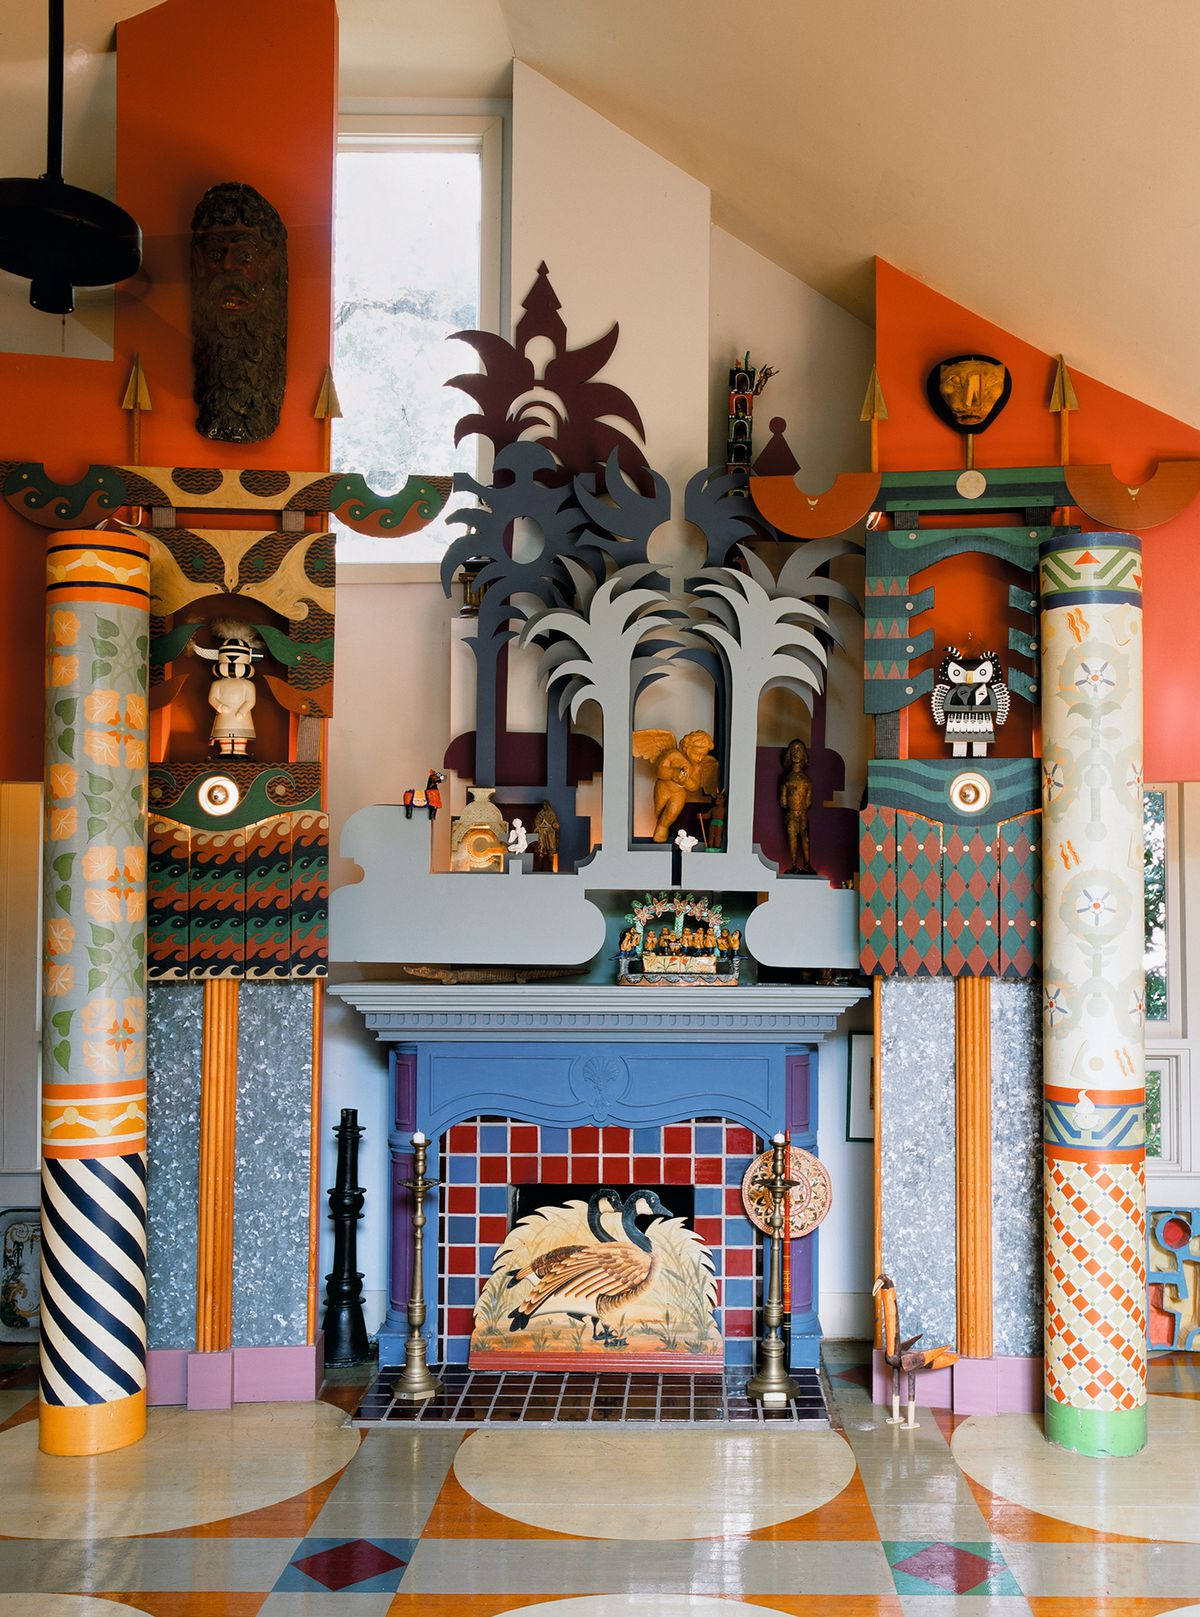 A blue mantle surrounded by blue palm trees, kachinas, masks, and colorful tile. The walls are painted orange and the floor is polychromatic.